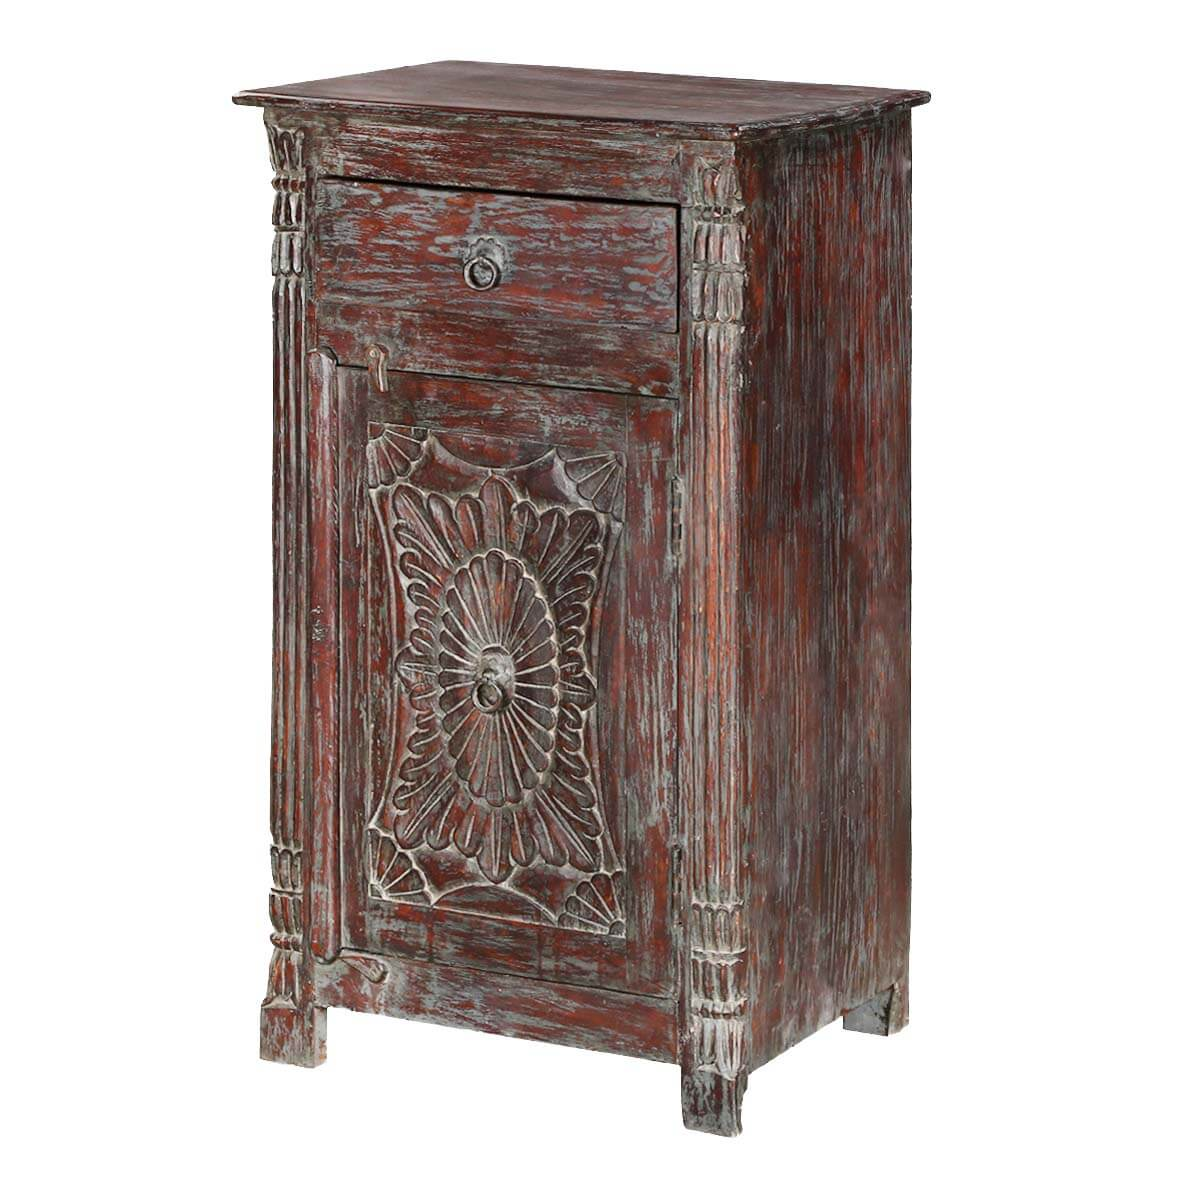 Chartres Rustic Solid Wood Single Door 1 Drawer Accent Nightstand